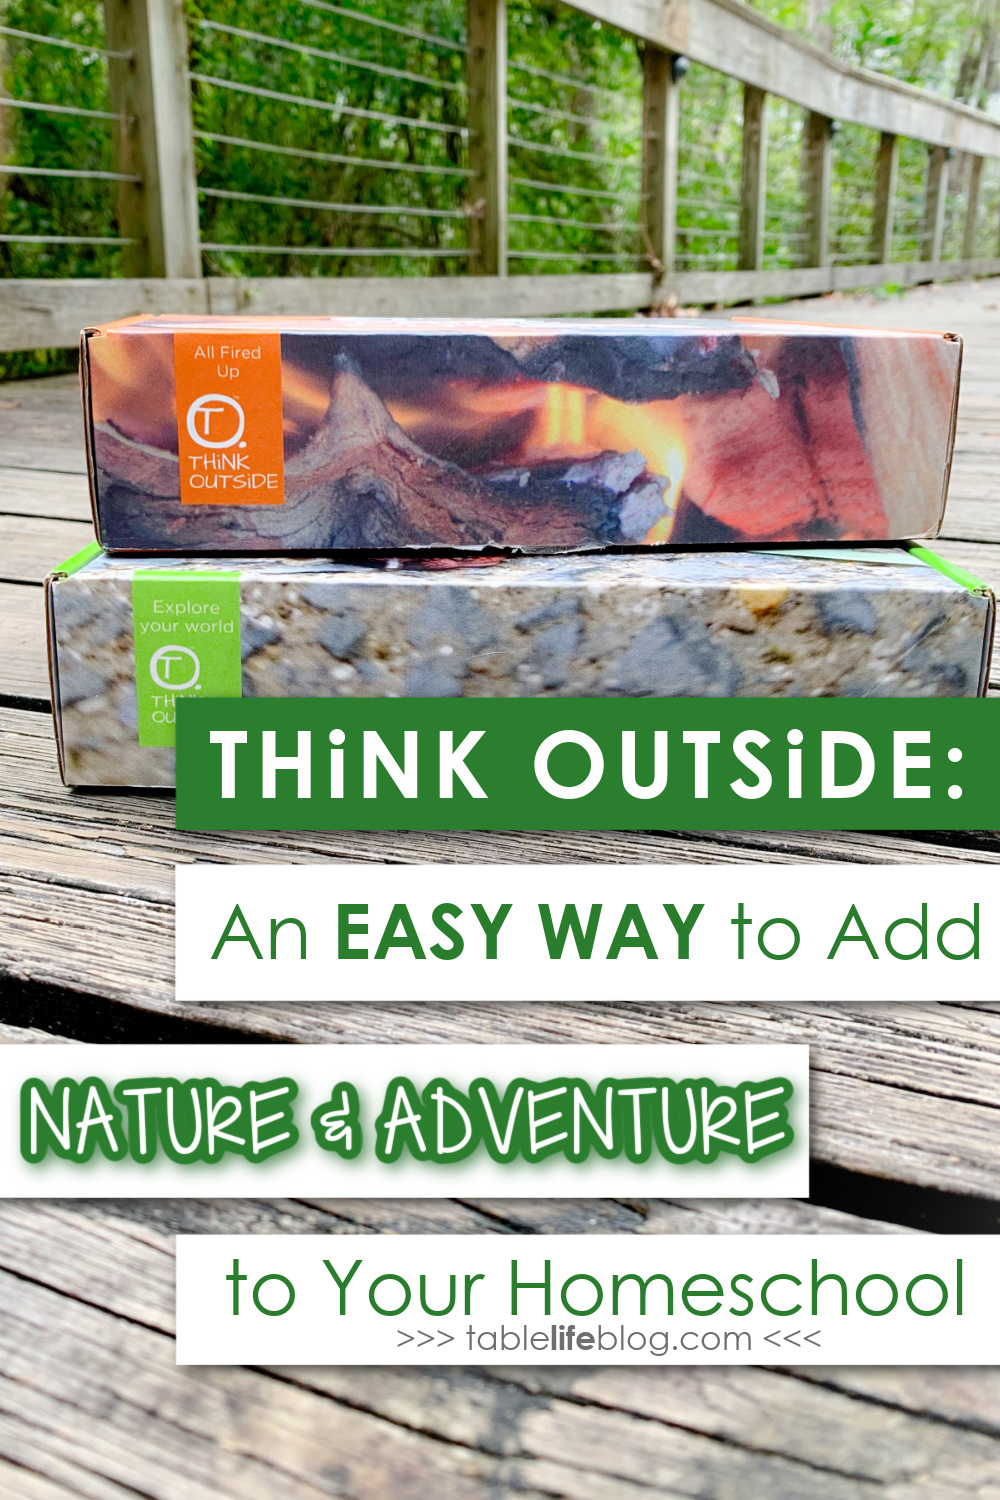 Need some nature study inspiration? This homeschool subscription box makes it easy to get outside and make nature a normal part of your homeschool life!